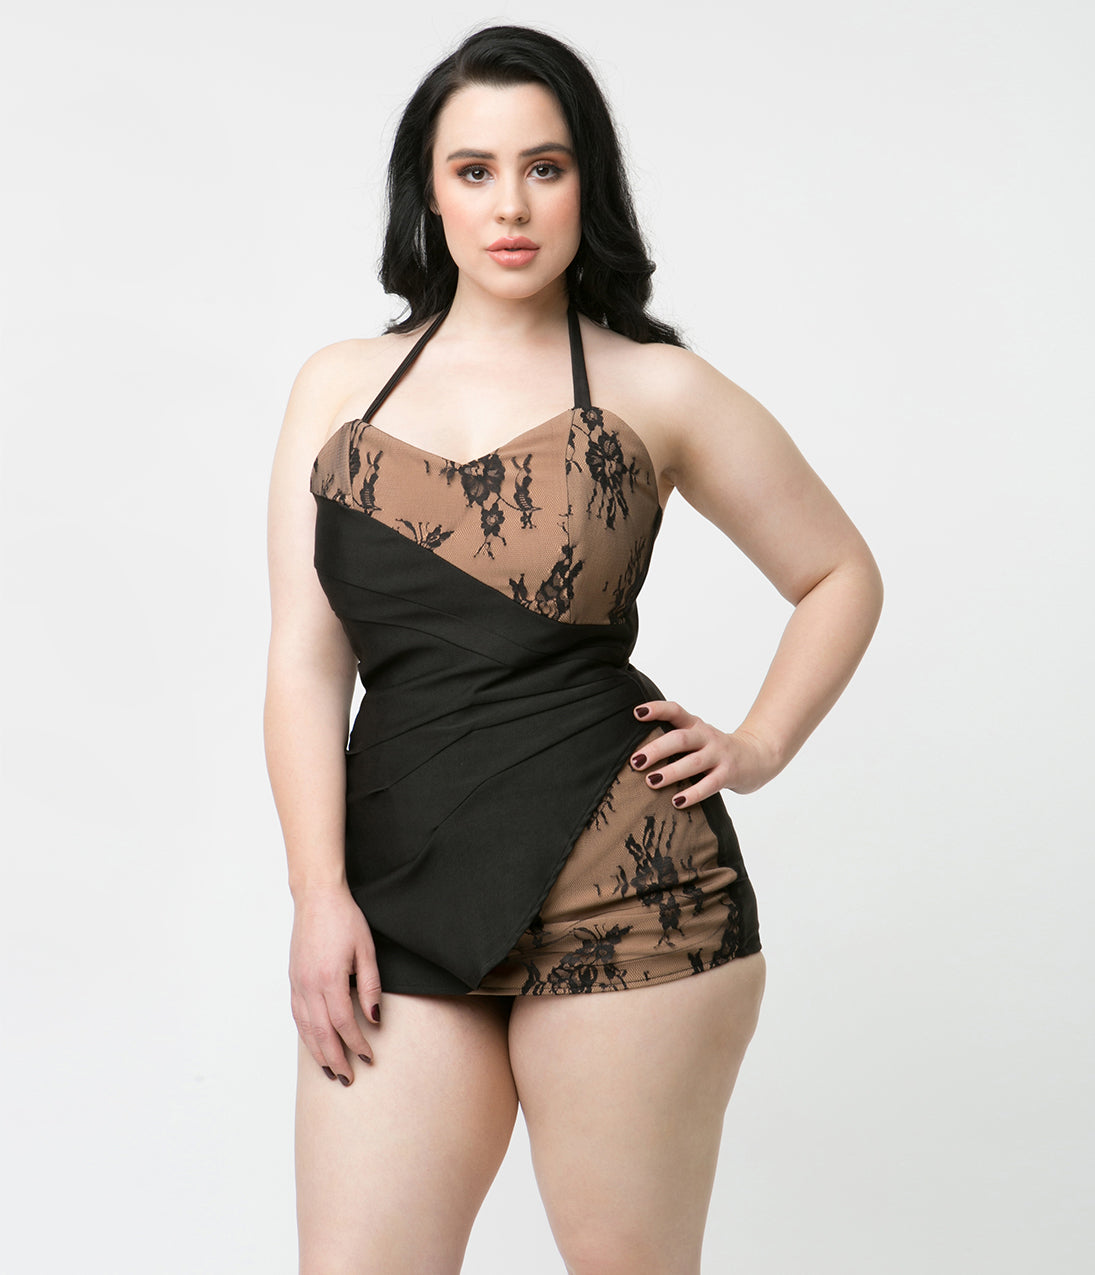 Vintage Bathing Suits | Retro Swimwear | Vintage Swimsuits Unique Vintage 1950S Style Black  Tan Lace Loren Playsuit $45.00 AT vintagedancer.com